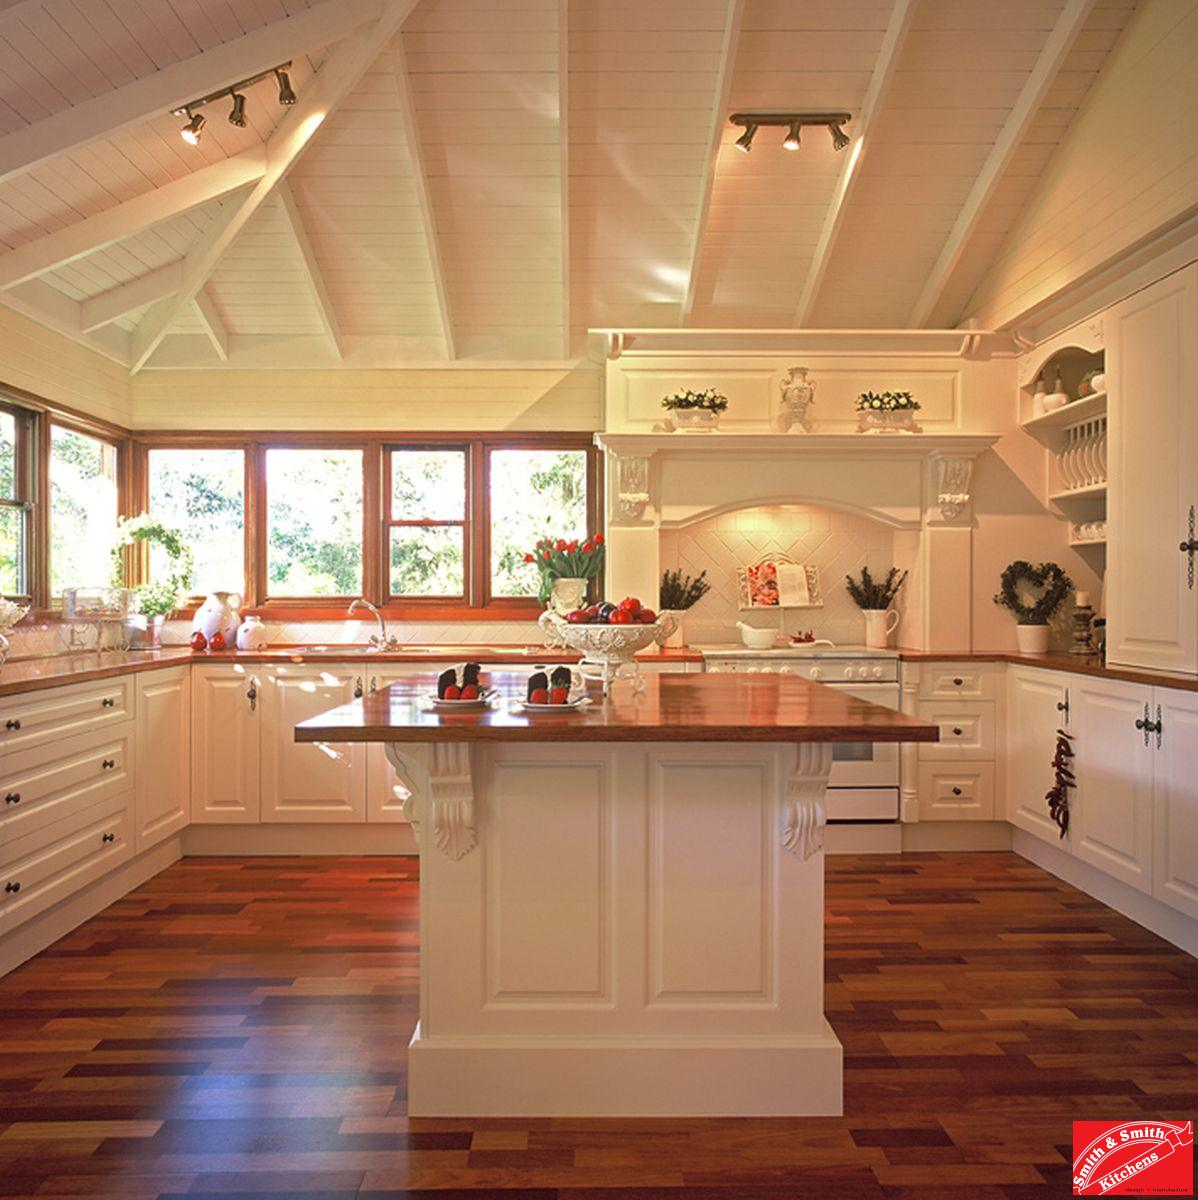 A Kitchen Island With Stools | Form Meets Function & Comfort